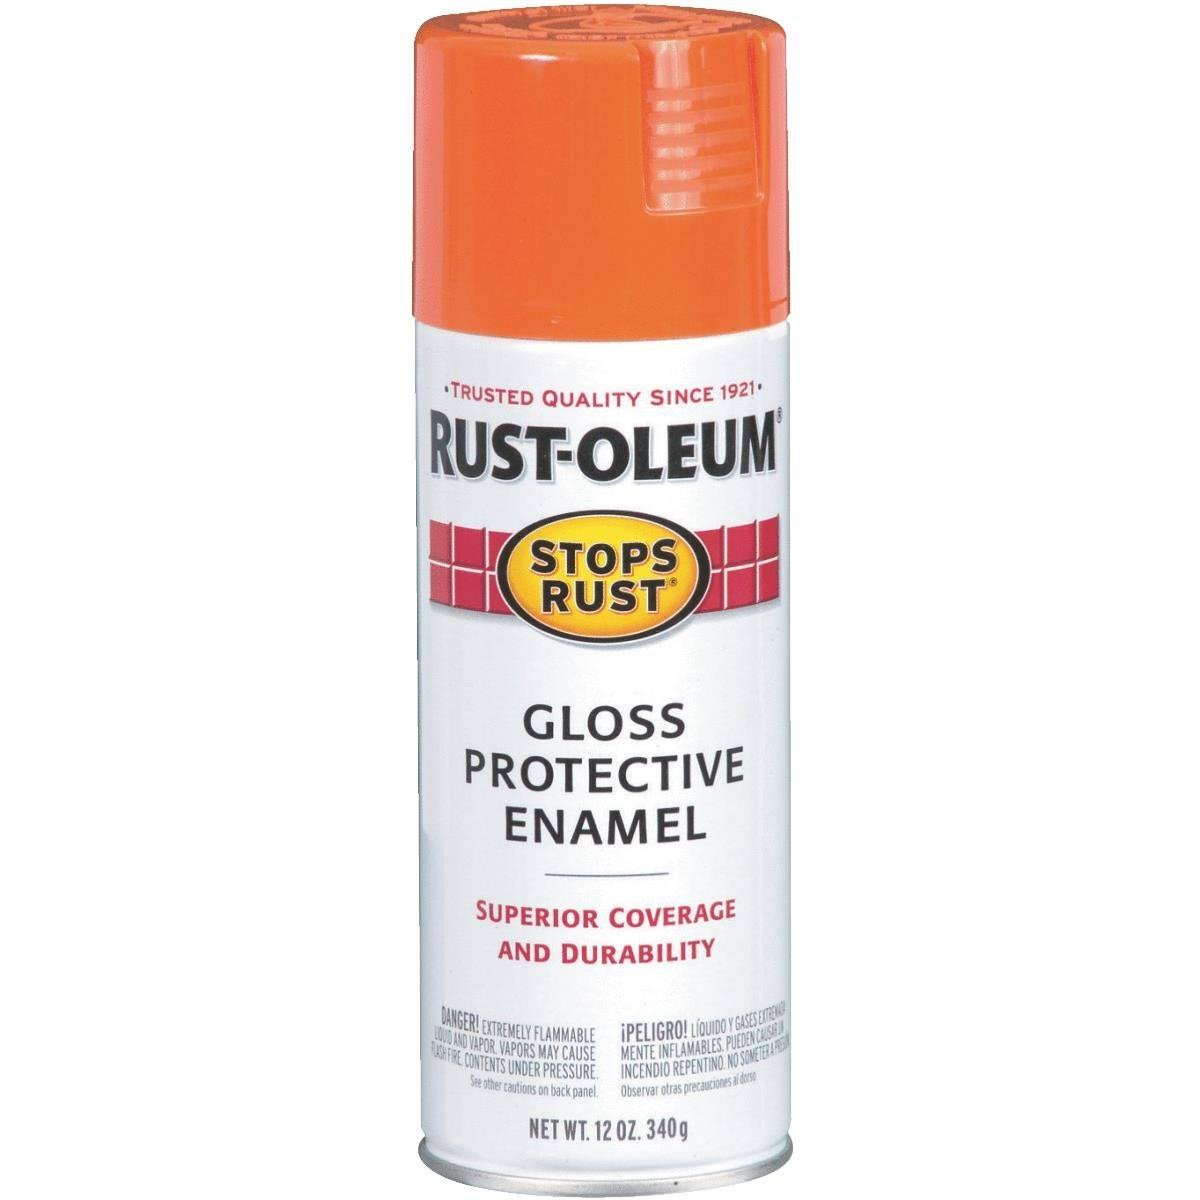 Rust-Oleum Stops Rust Orange Gloss Protective Enamel